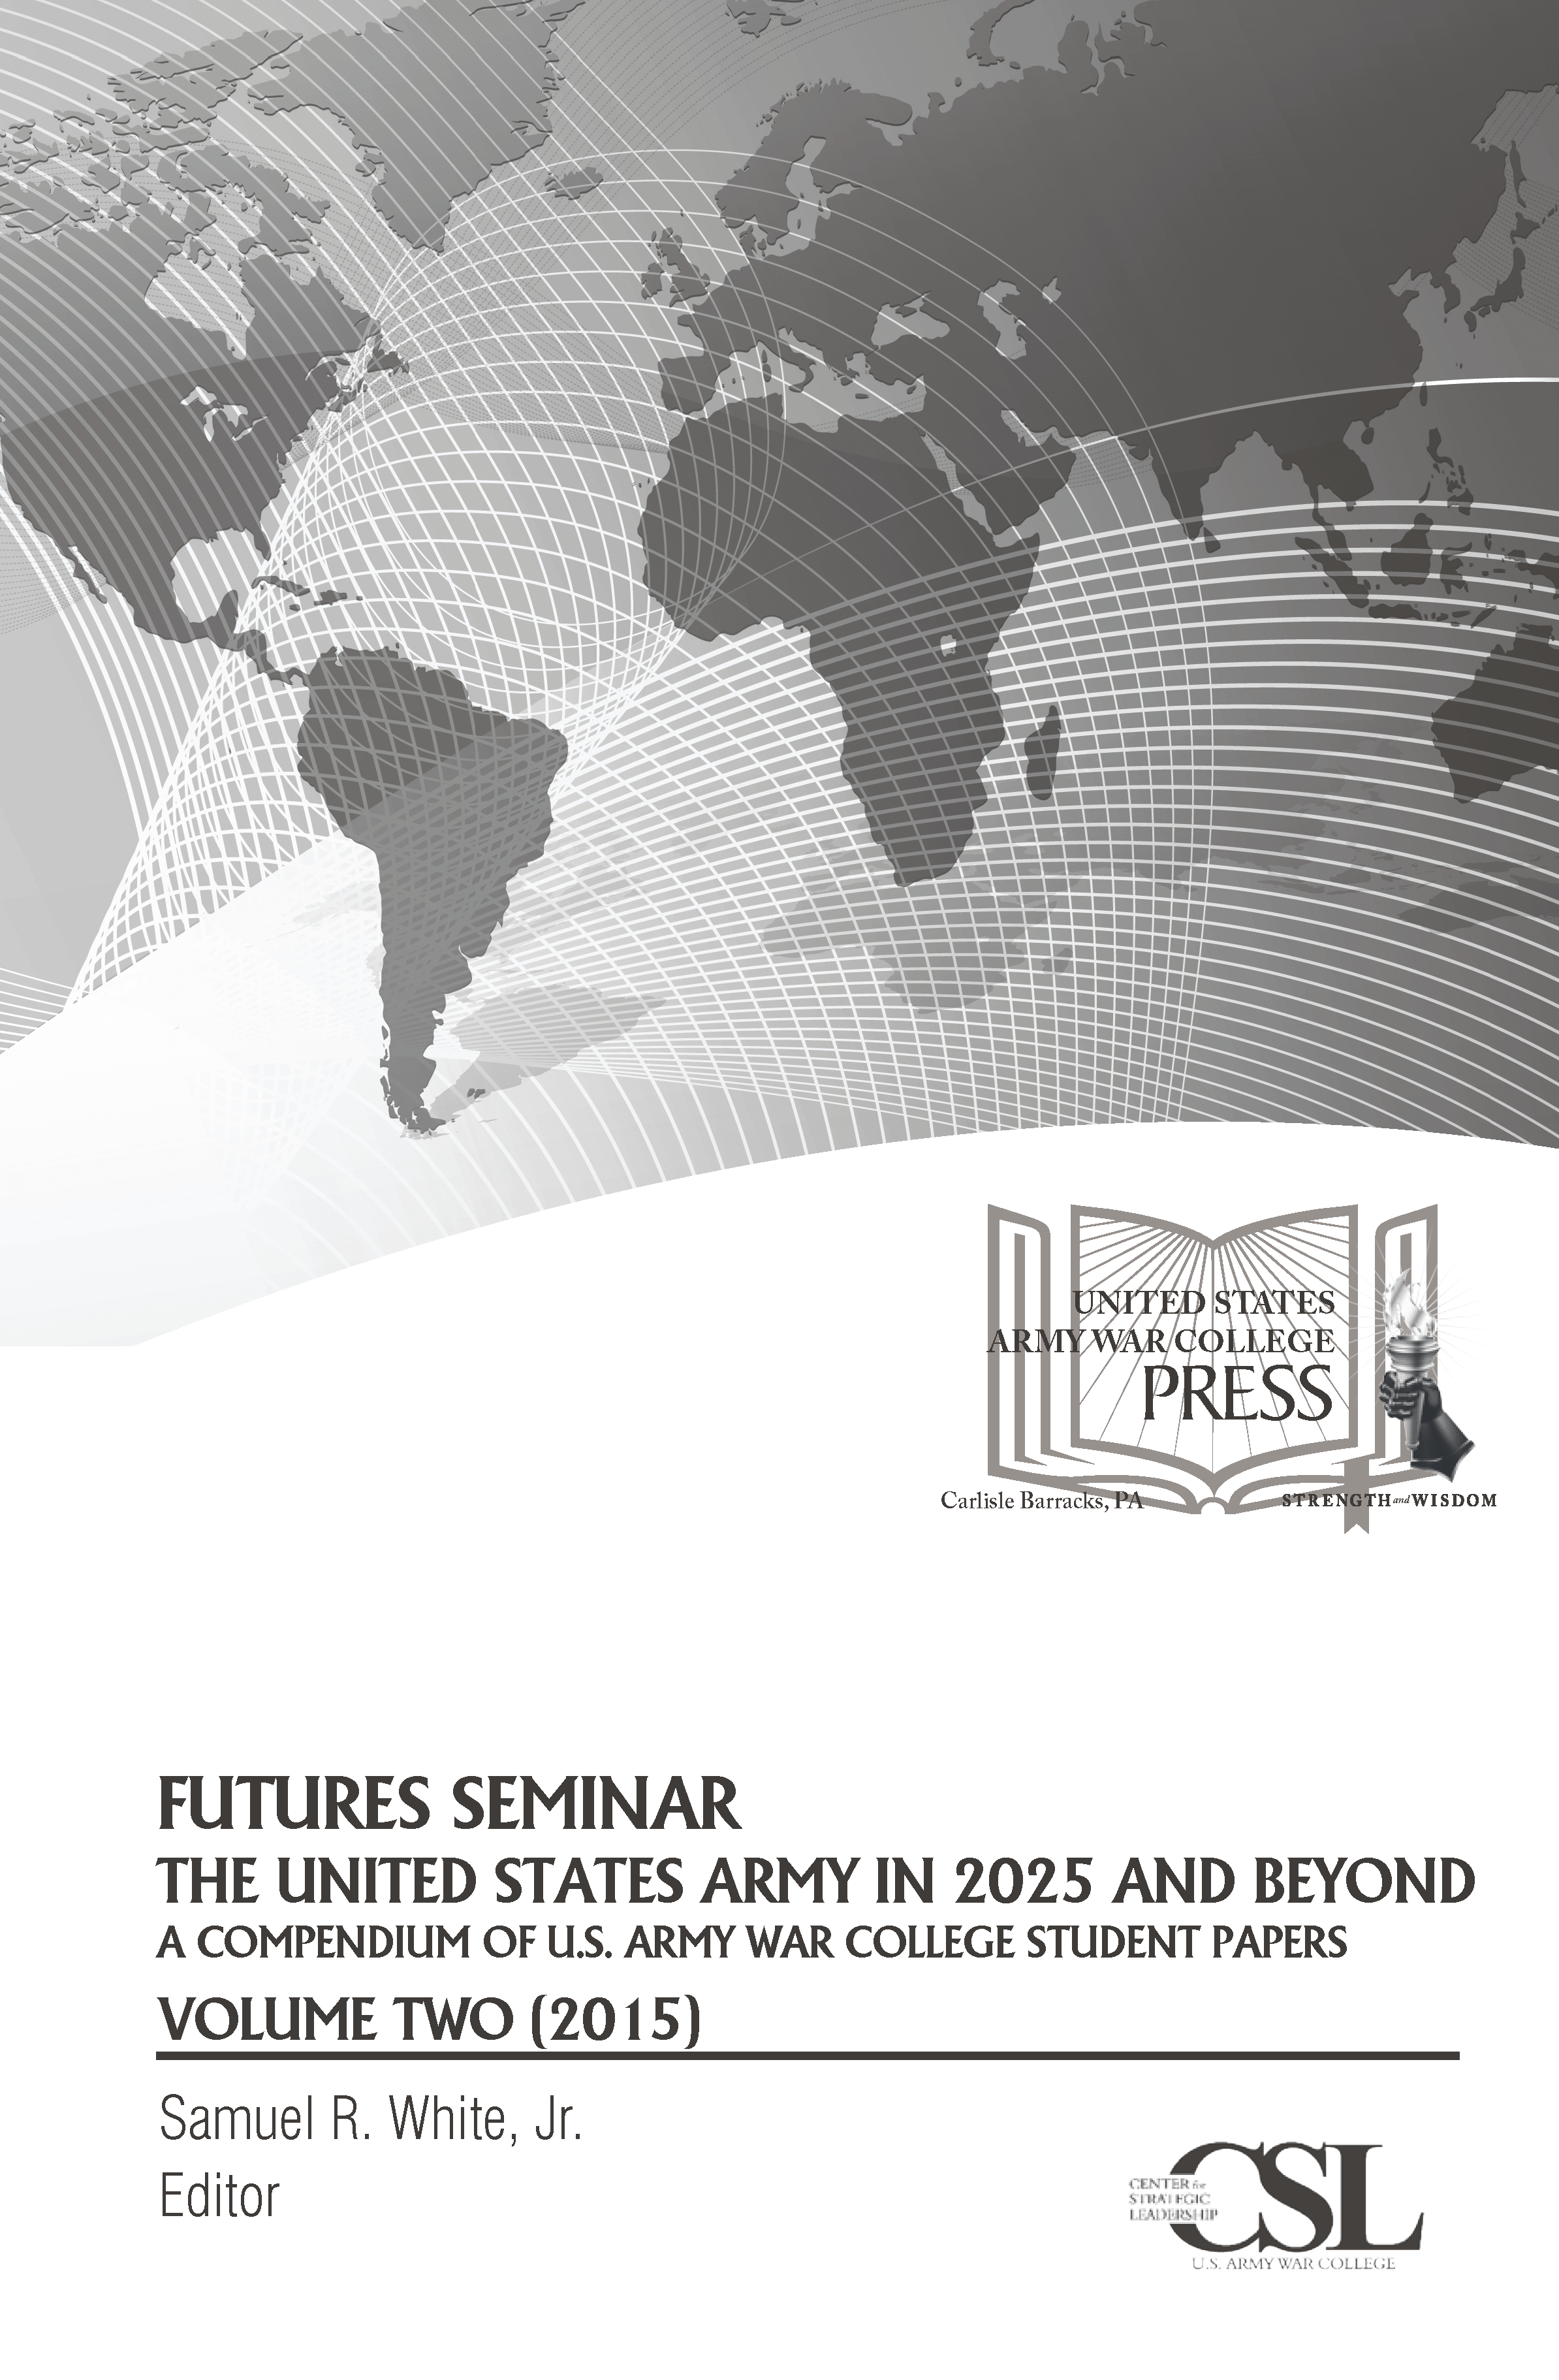 Futures Seminar 2016 - The United States Army in 2030 and Beyond (Vol. 3)